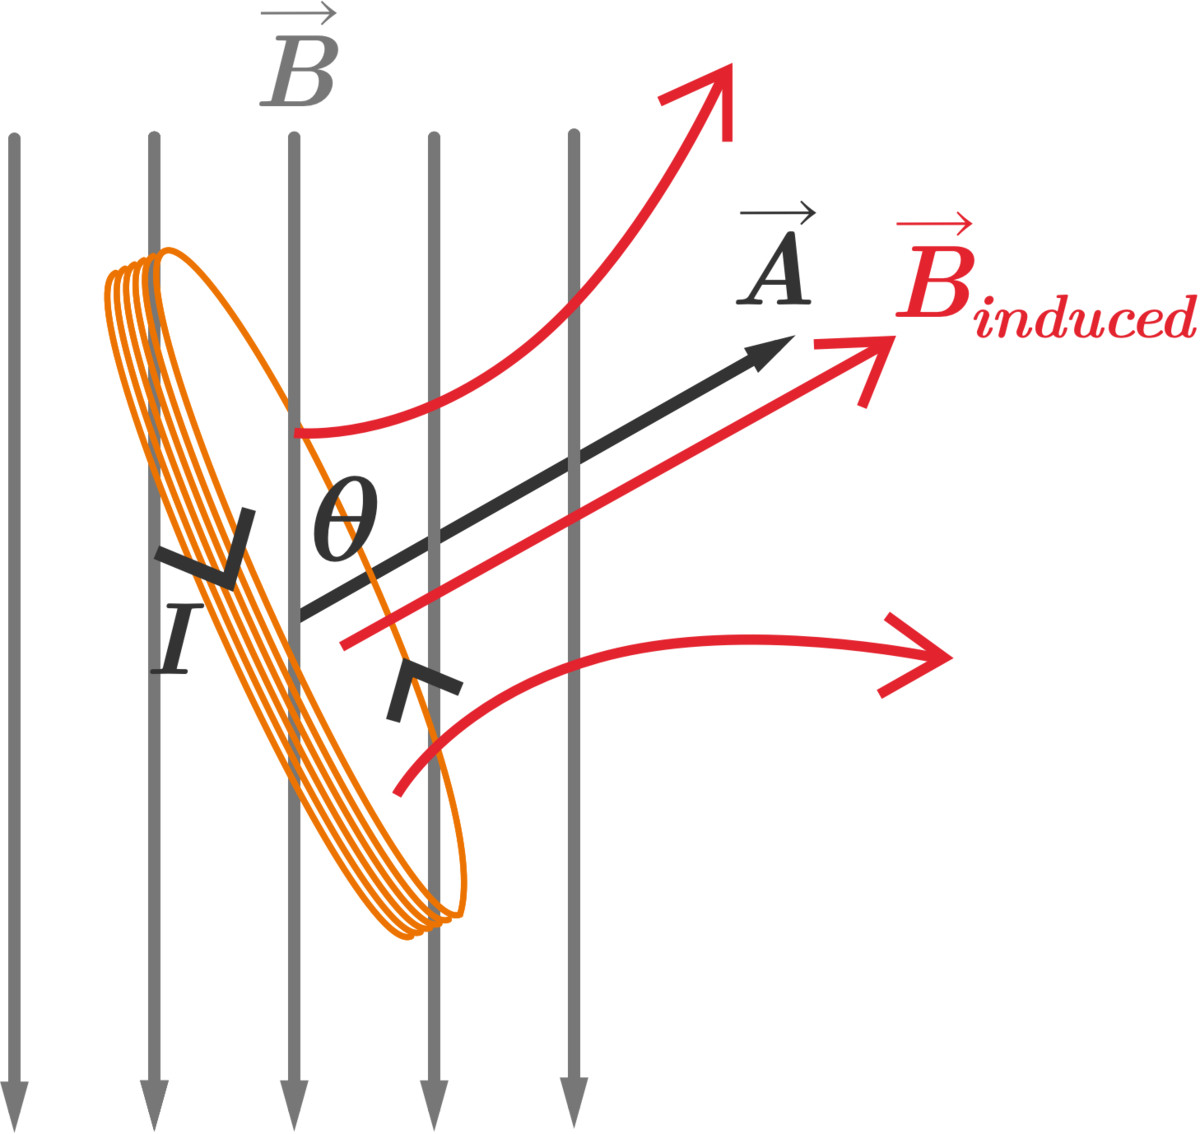 As the coil tilts, the area vector \(\vec{A}\) is no longer perpendicular to the applied magnetic field \(\vec{B}\), so the magnetic flux of the applied field increases. This induces an emf and thus a current in the coil which results in an induced magnetic field opposing the applied field.